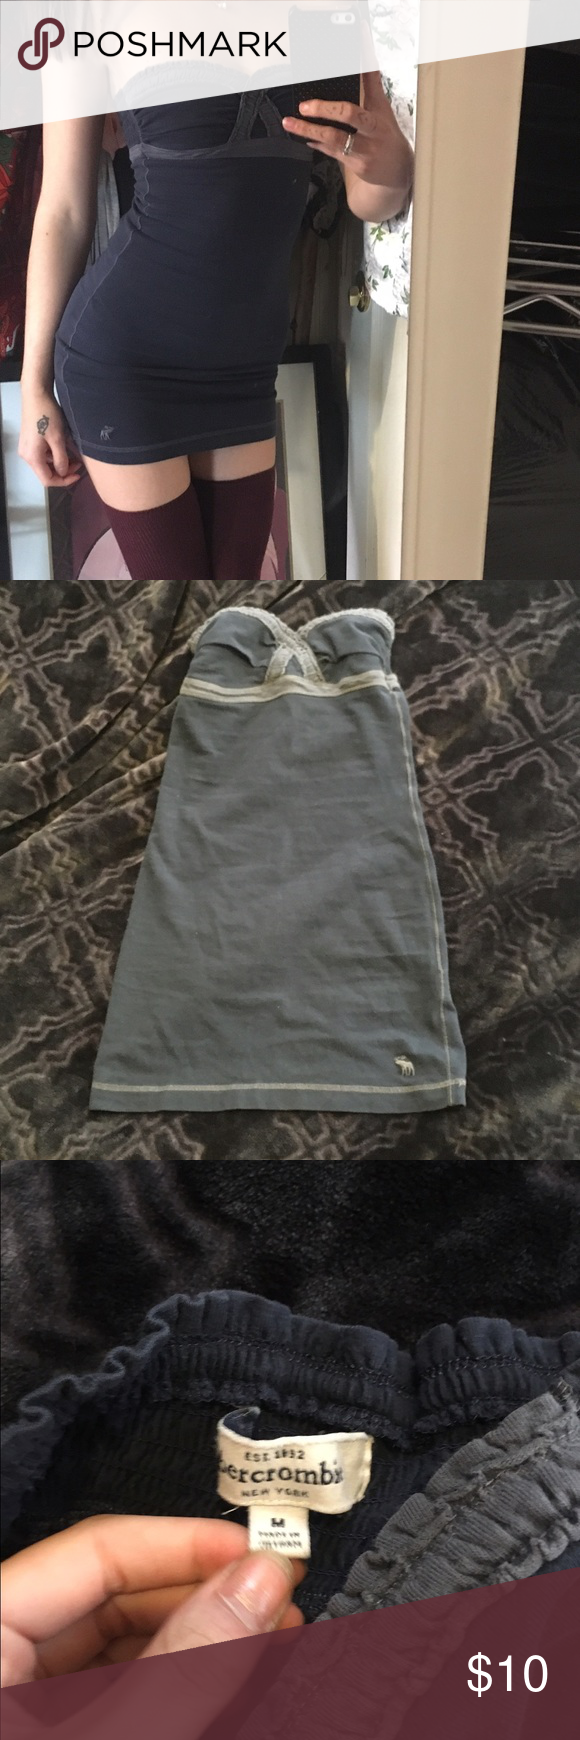 A&F dress Got this as an extra gift on depop and it's too short, perfect condition Abercrombie & Fitch Dresses Mini